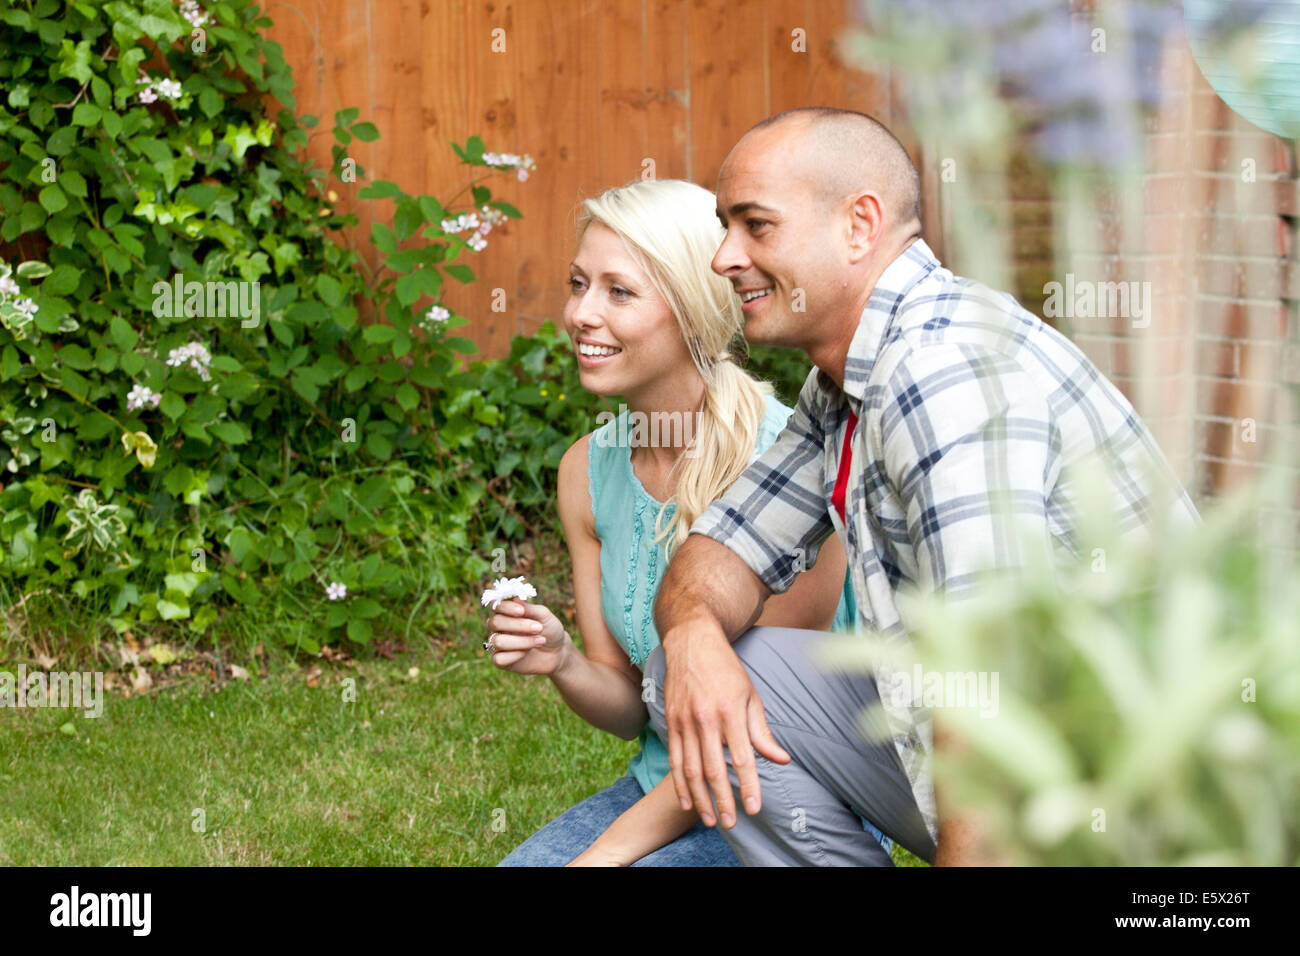 Couple crouching down in garden watching - Stock Image